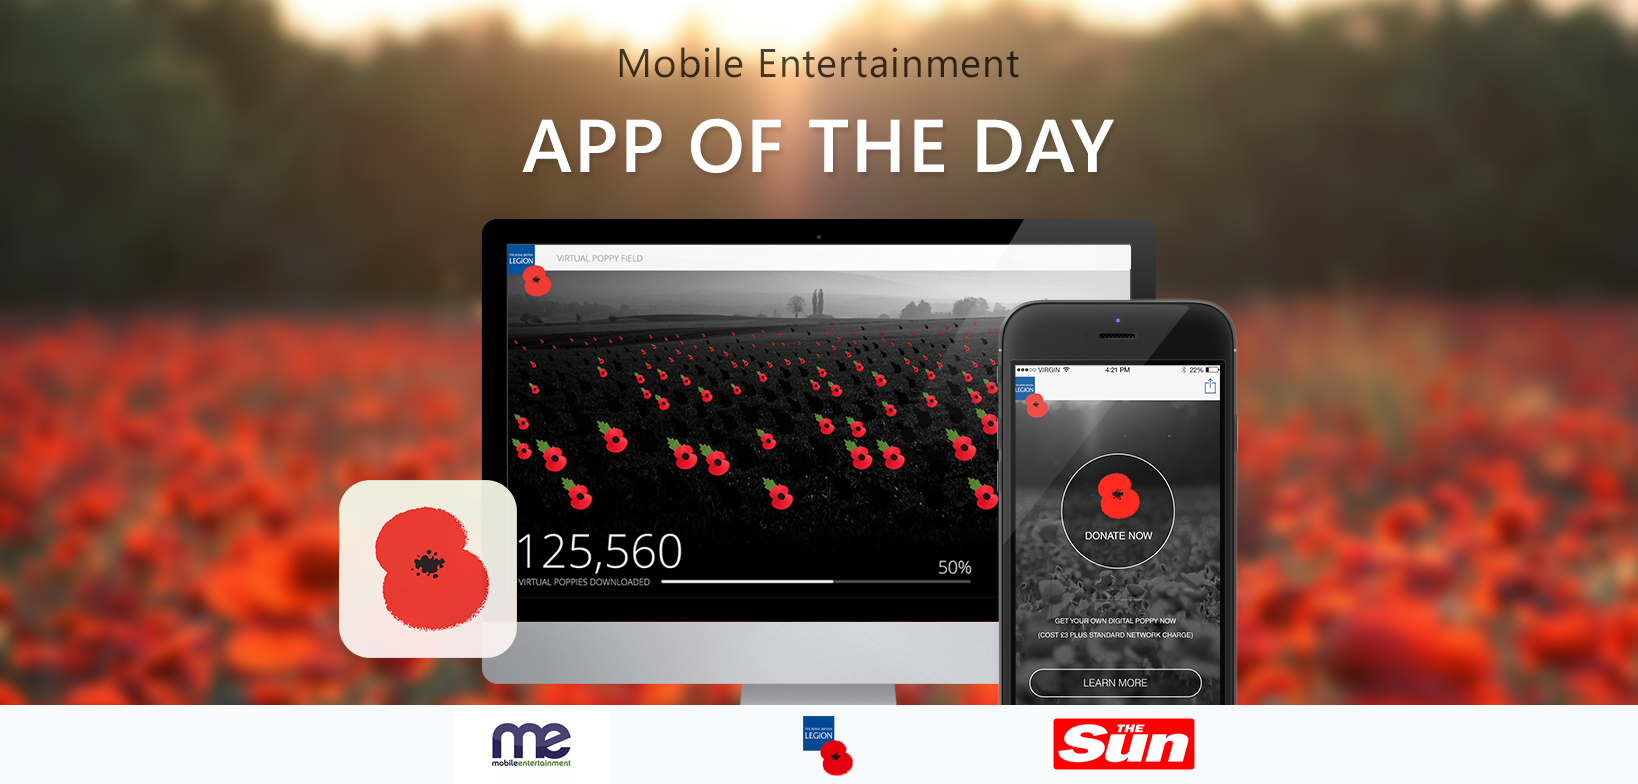 Appoftheday banner